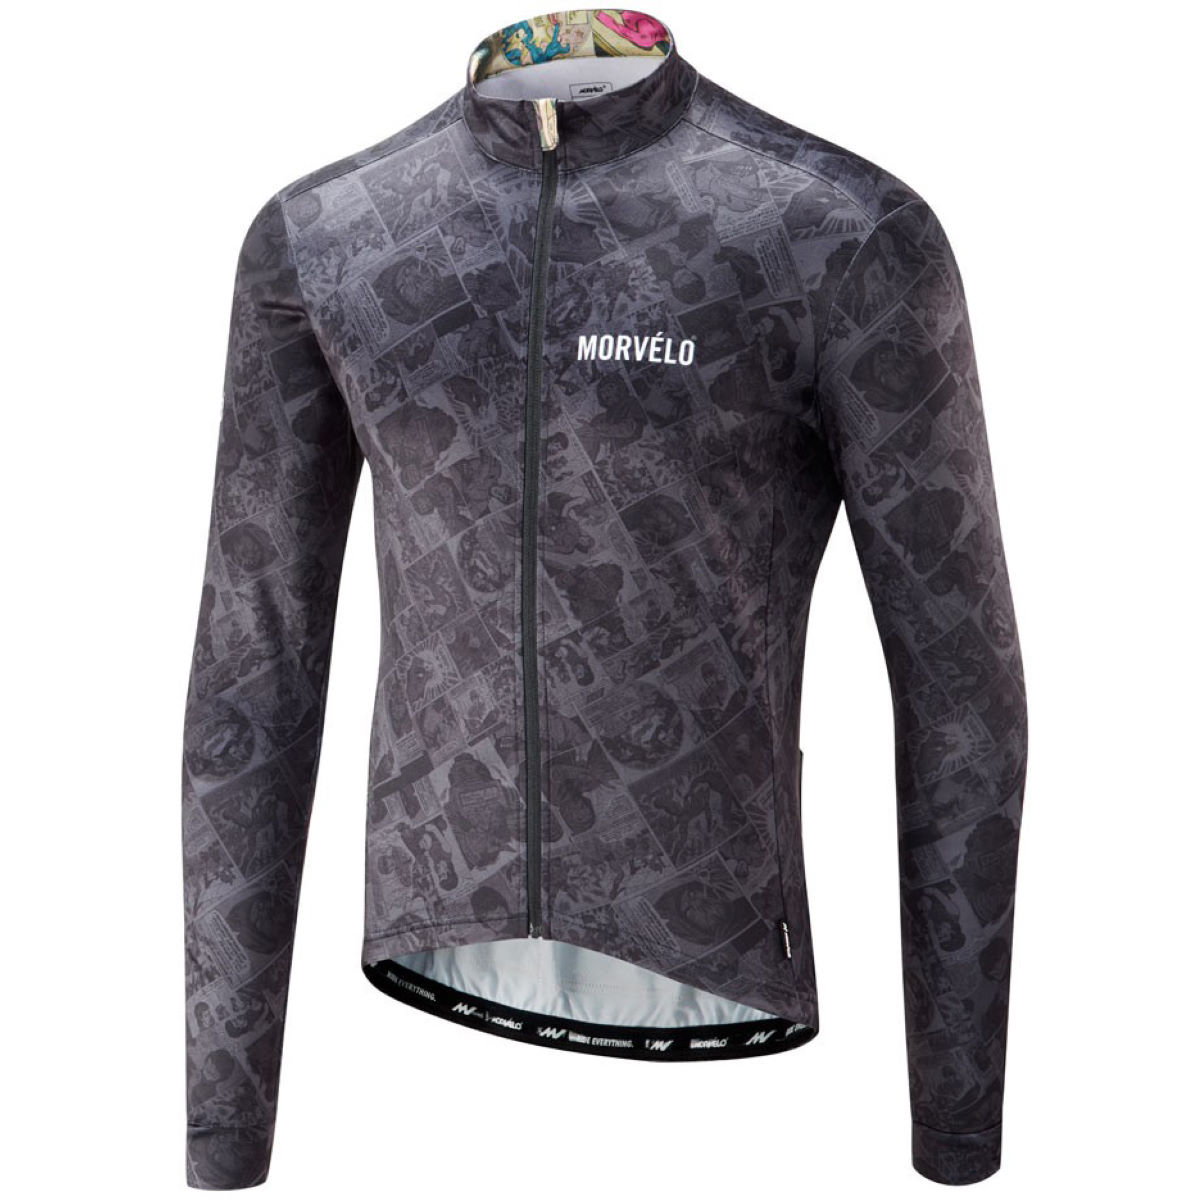 Morvelo Co-Mix Thermoactive Long Sleeve Jersey - Maillots